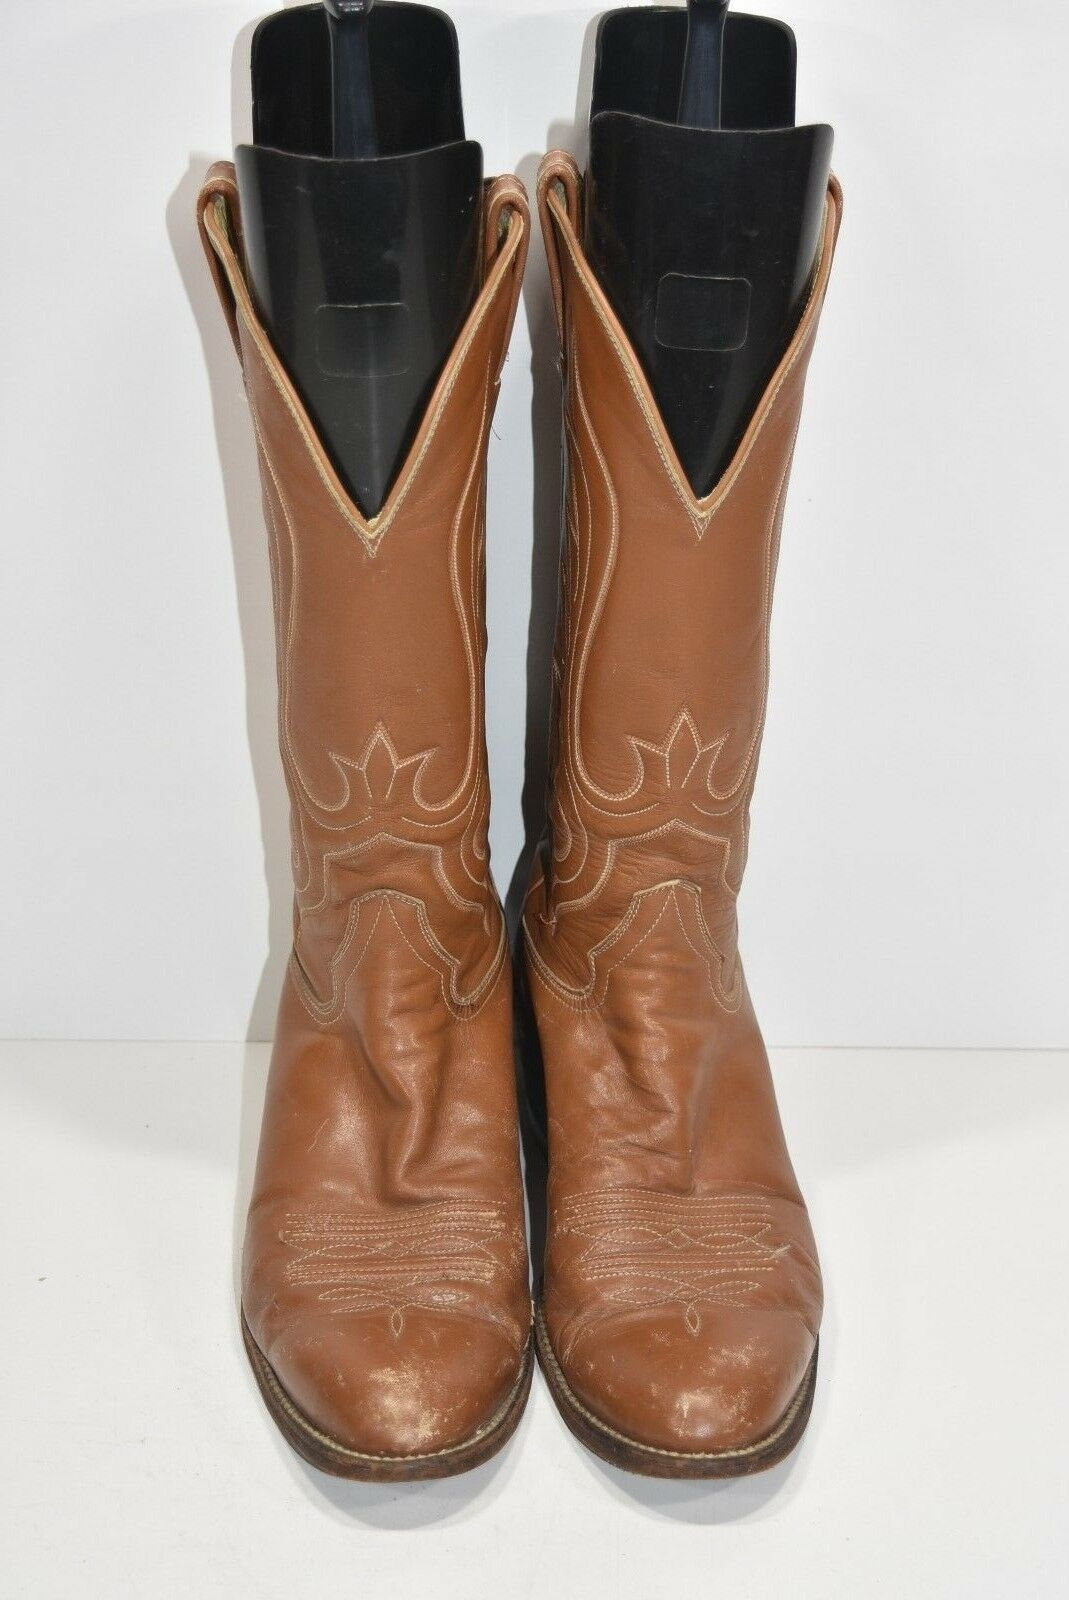 HONDO BOOTS 11 B VINTAGE BROWN LEATHER CLASSIC WESTERN COWBOY BOOTS ROPERS